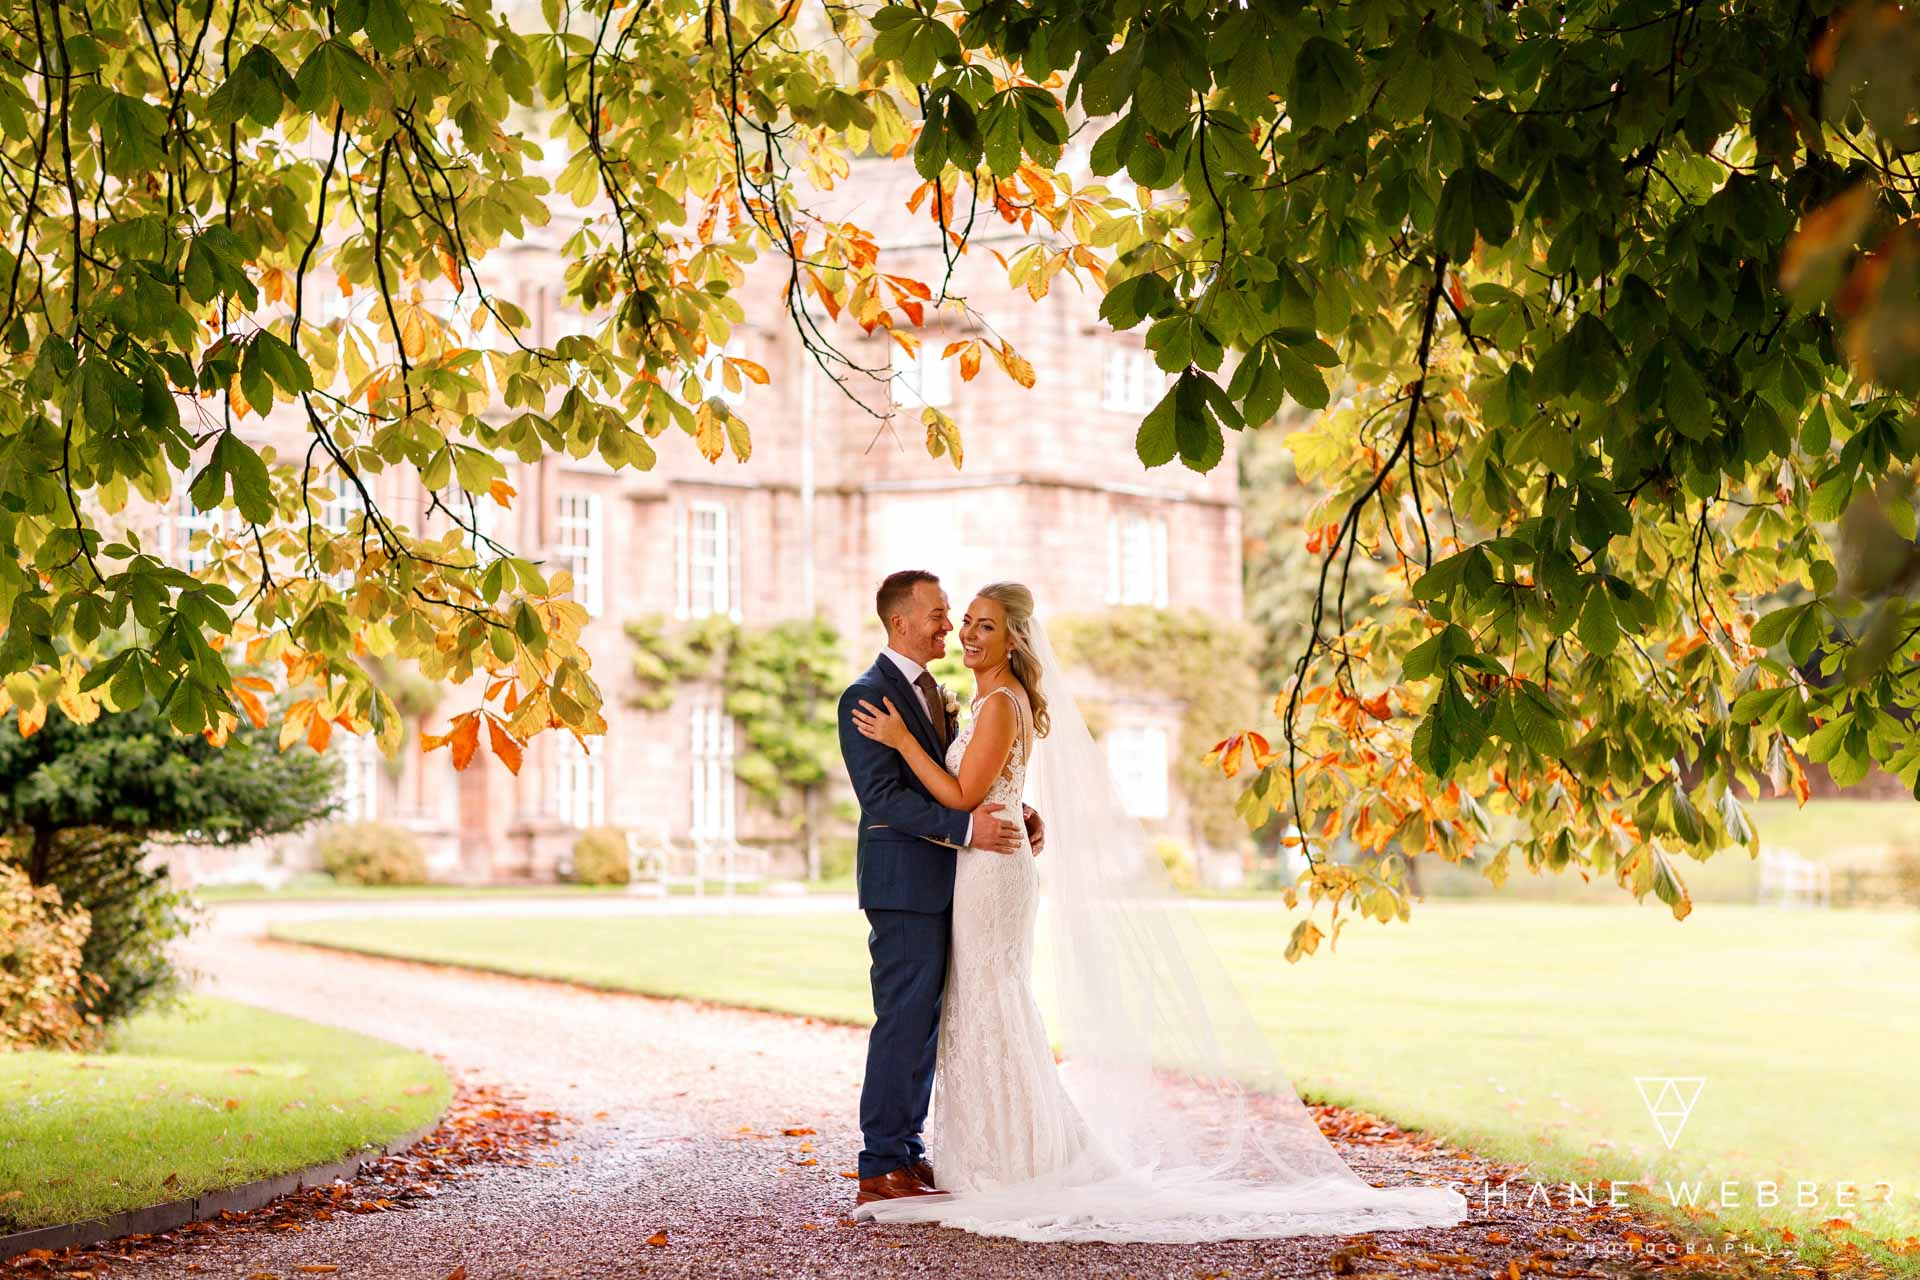 Wedding planning services in Manchester